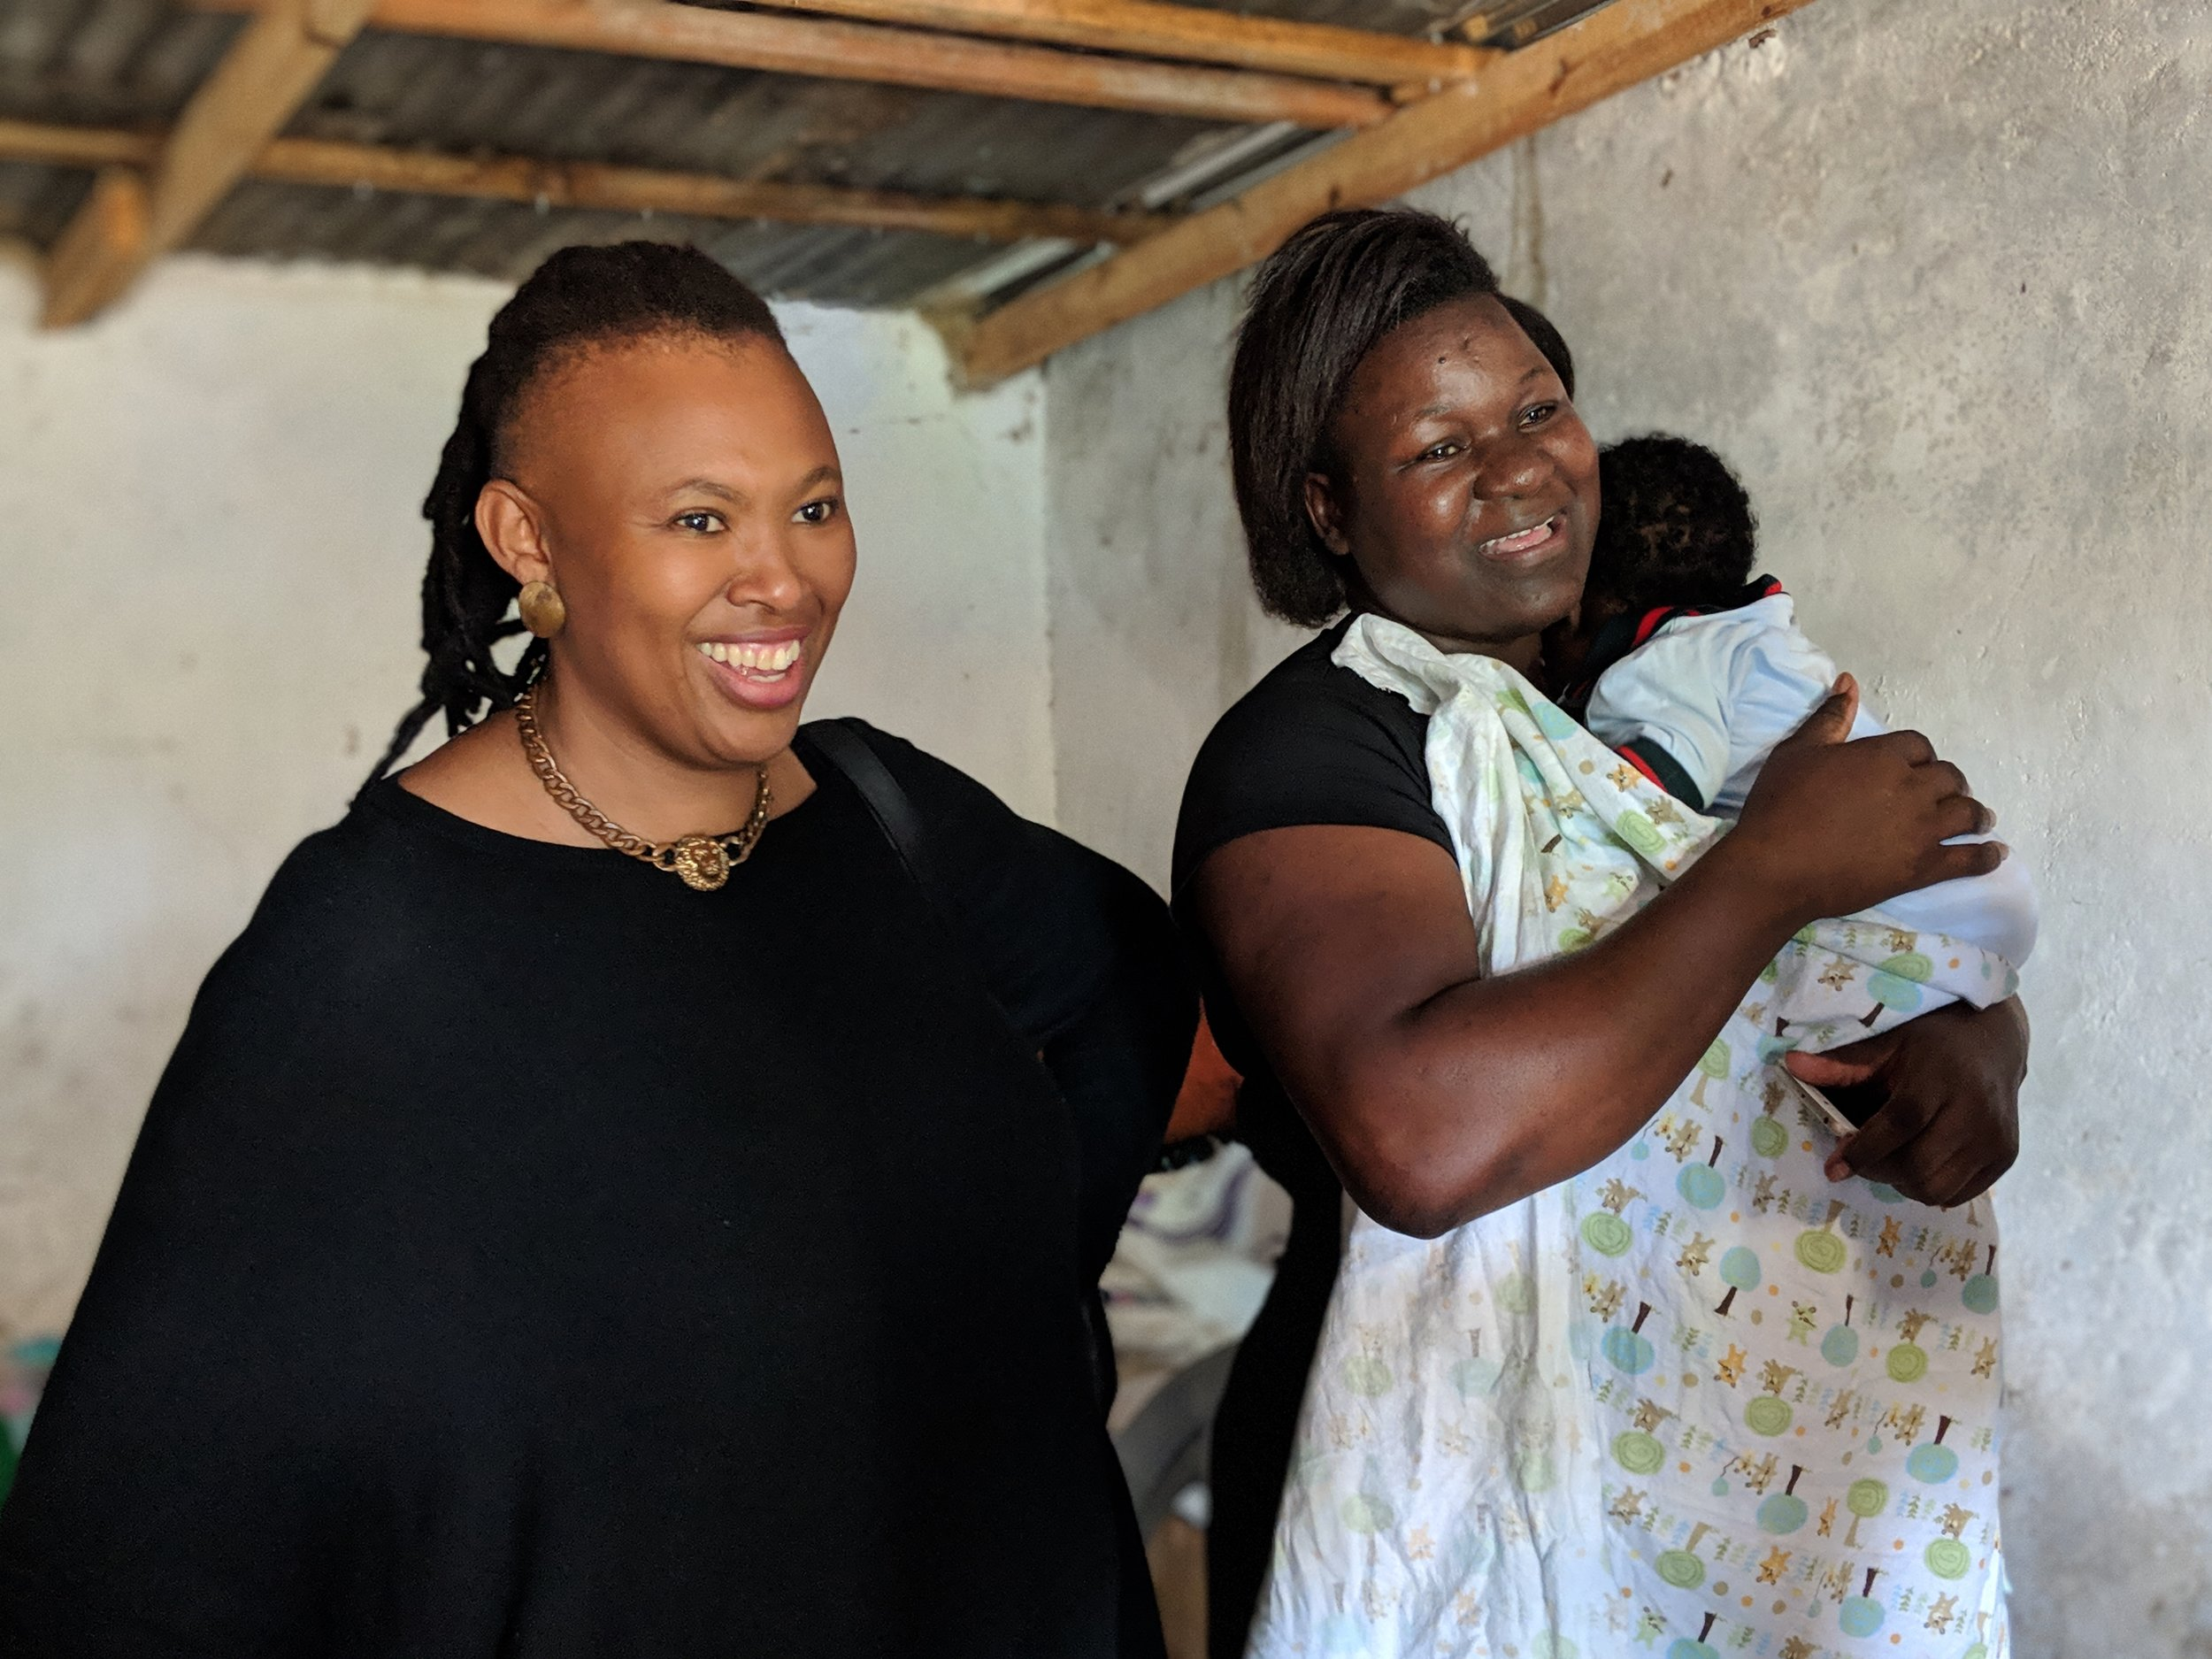 Flame Tree Initiative Fellow, Dineo Mkwezalamba (left) and social entrepreneur, Trinitas Mhango and her baby (right).